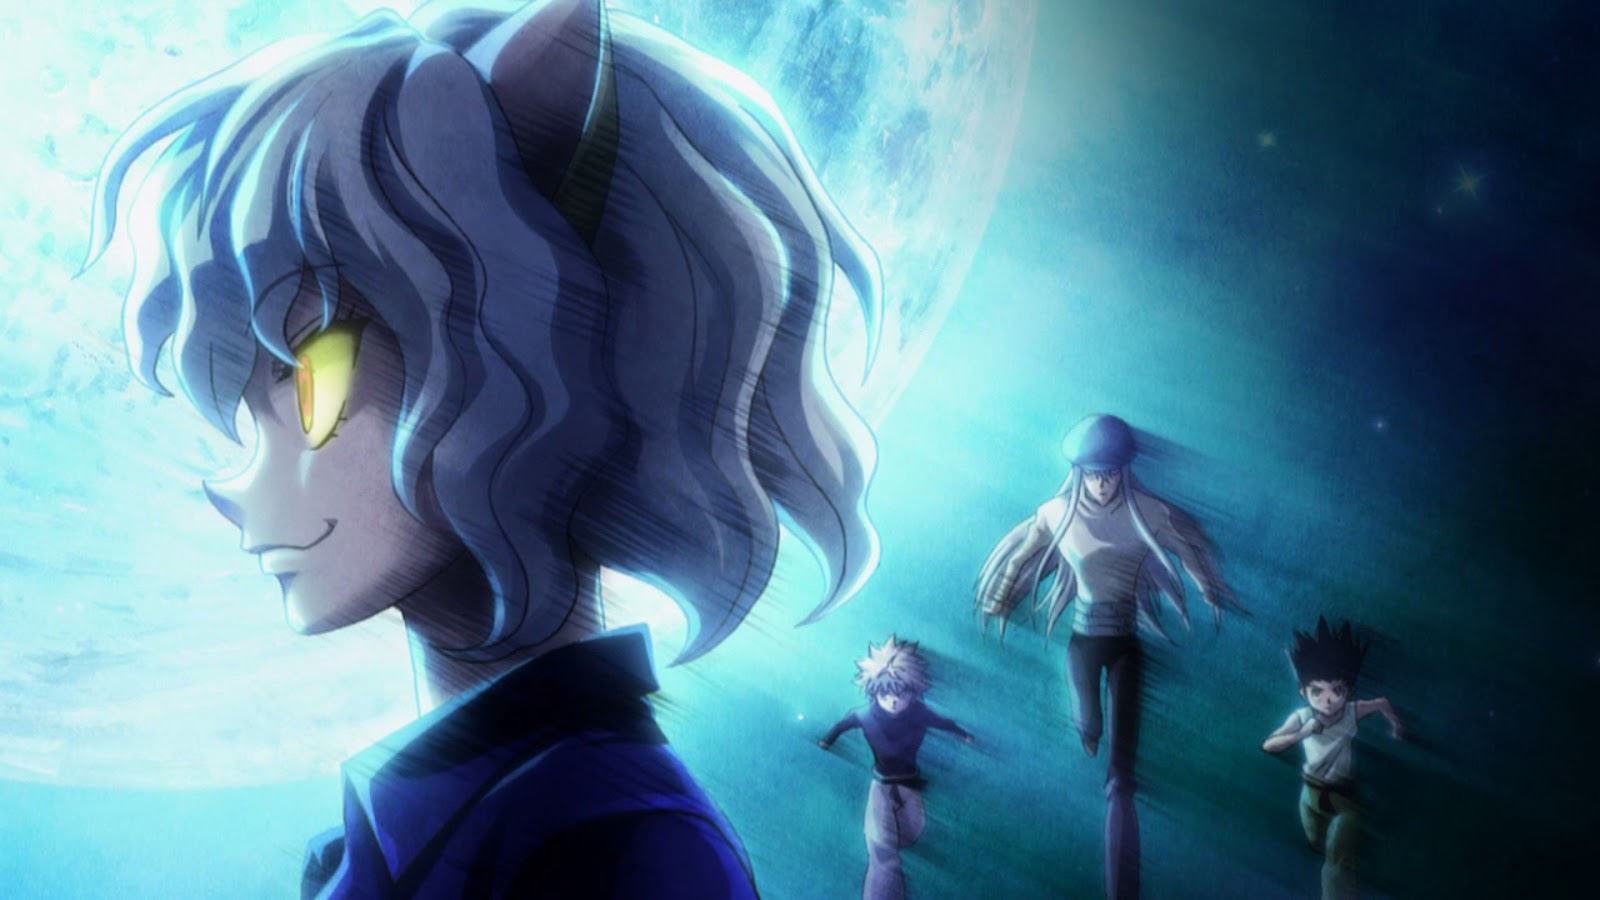 Hd Wallpaper Hunter X Hunter 2011 Chimera Ant Arc 1863